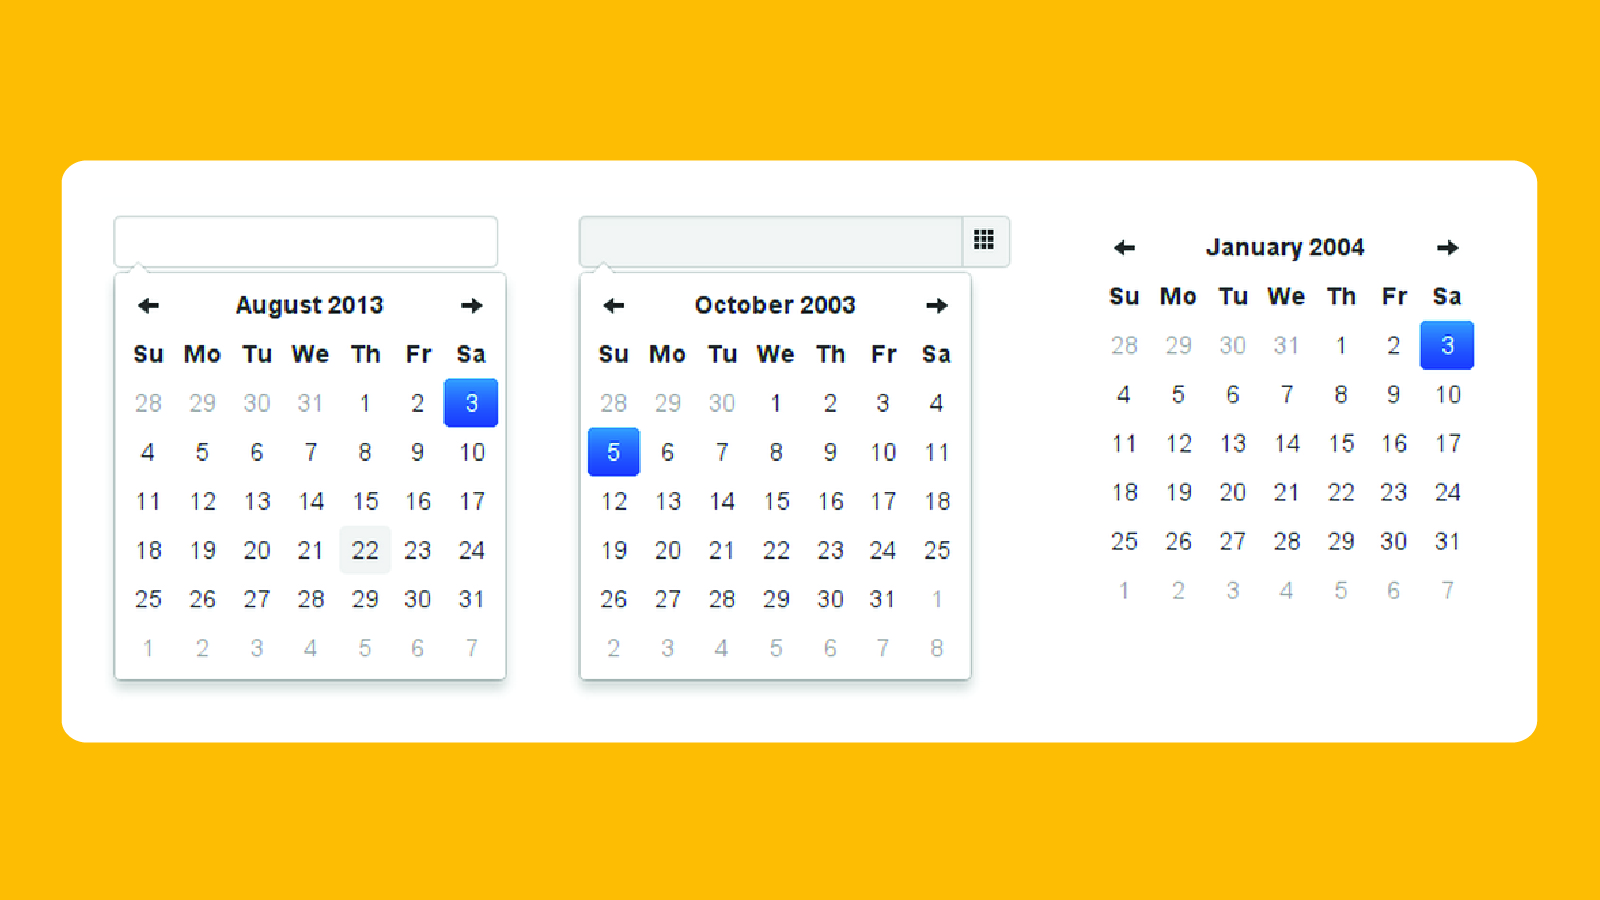 Download Bootstrap Datepicker Js And Css - UXZC